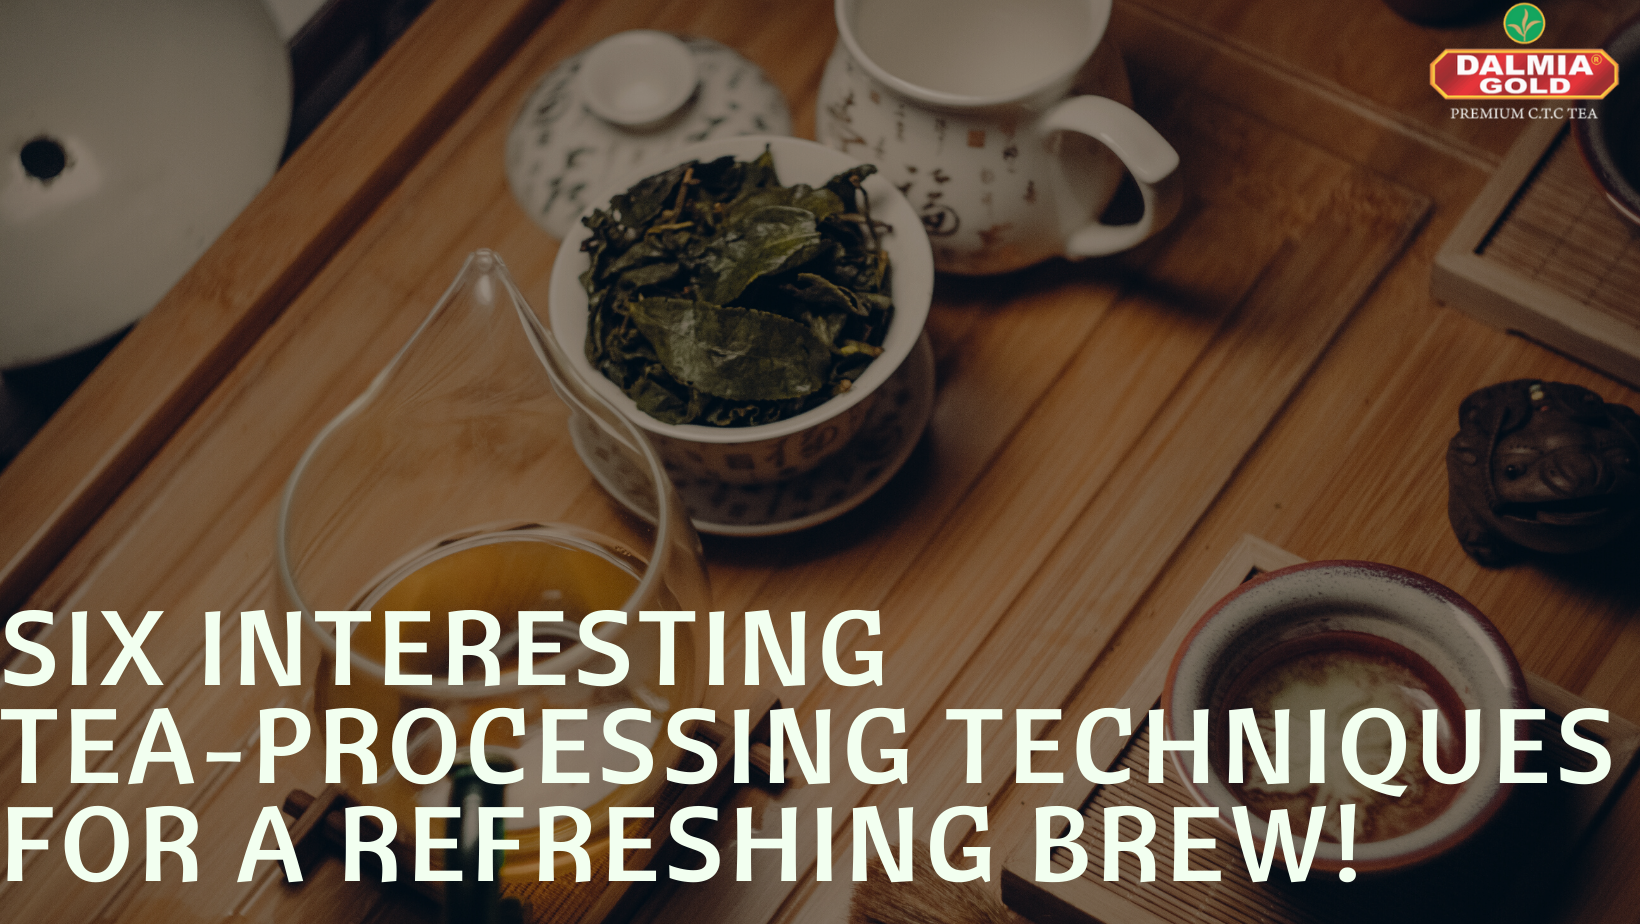 Six Interesting Tea-Processing Techniques for a Refreshing Brew